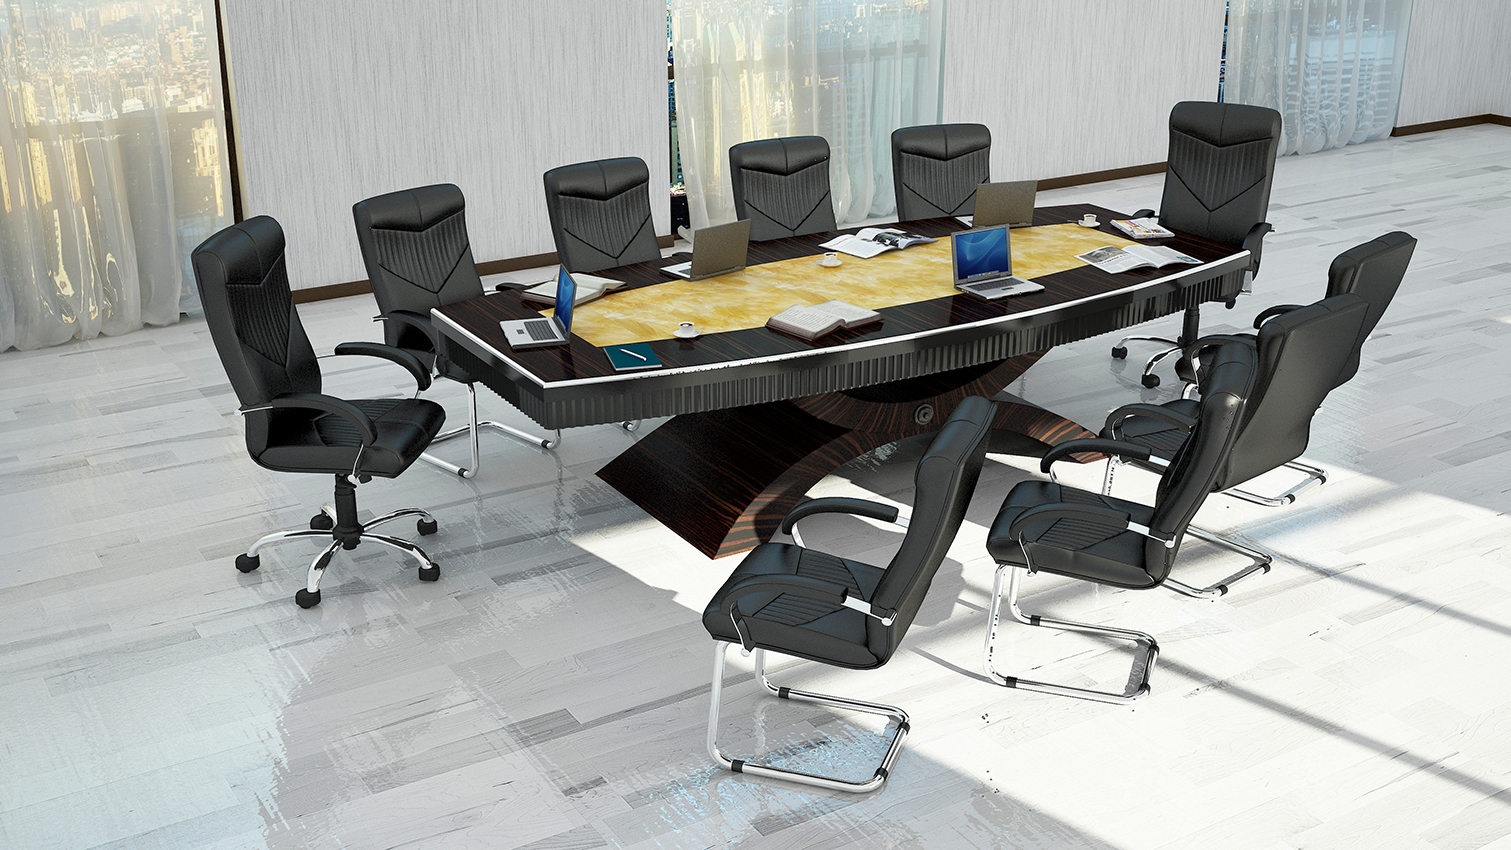 furniture for meetings-senator